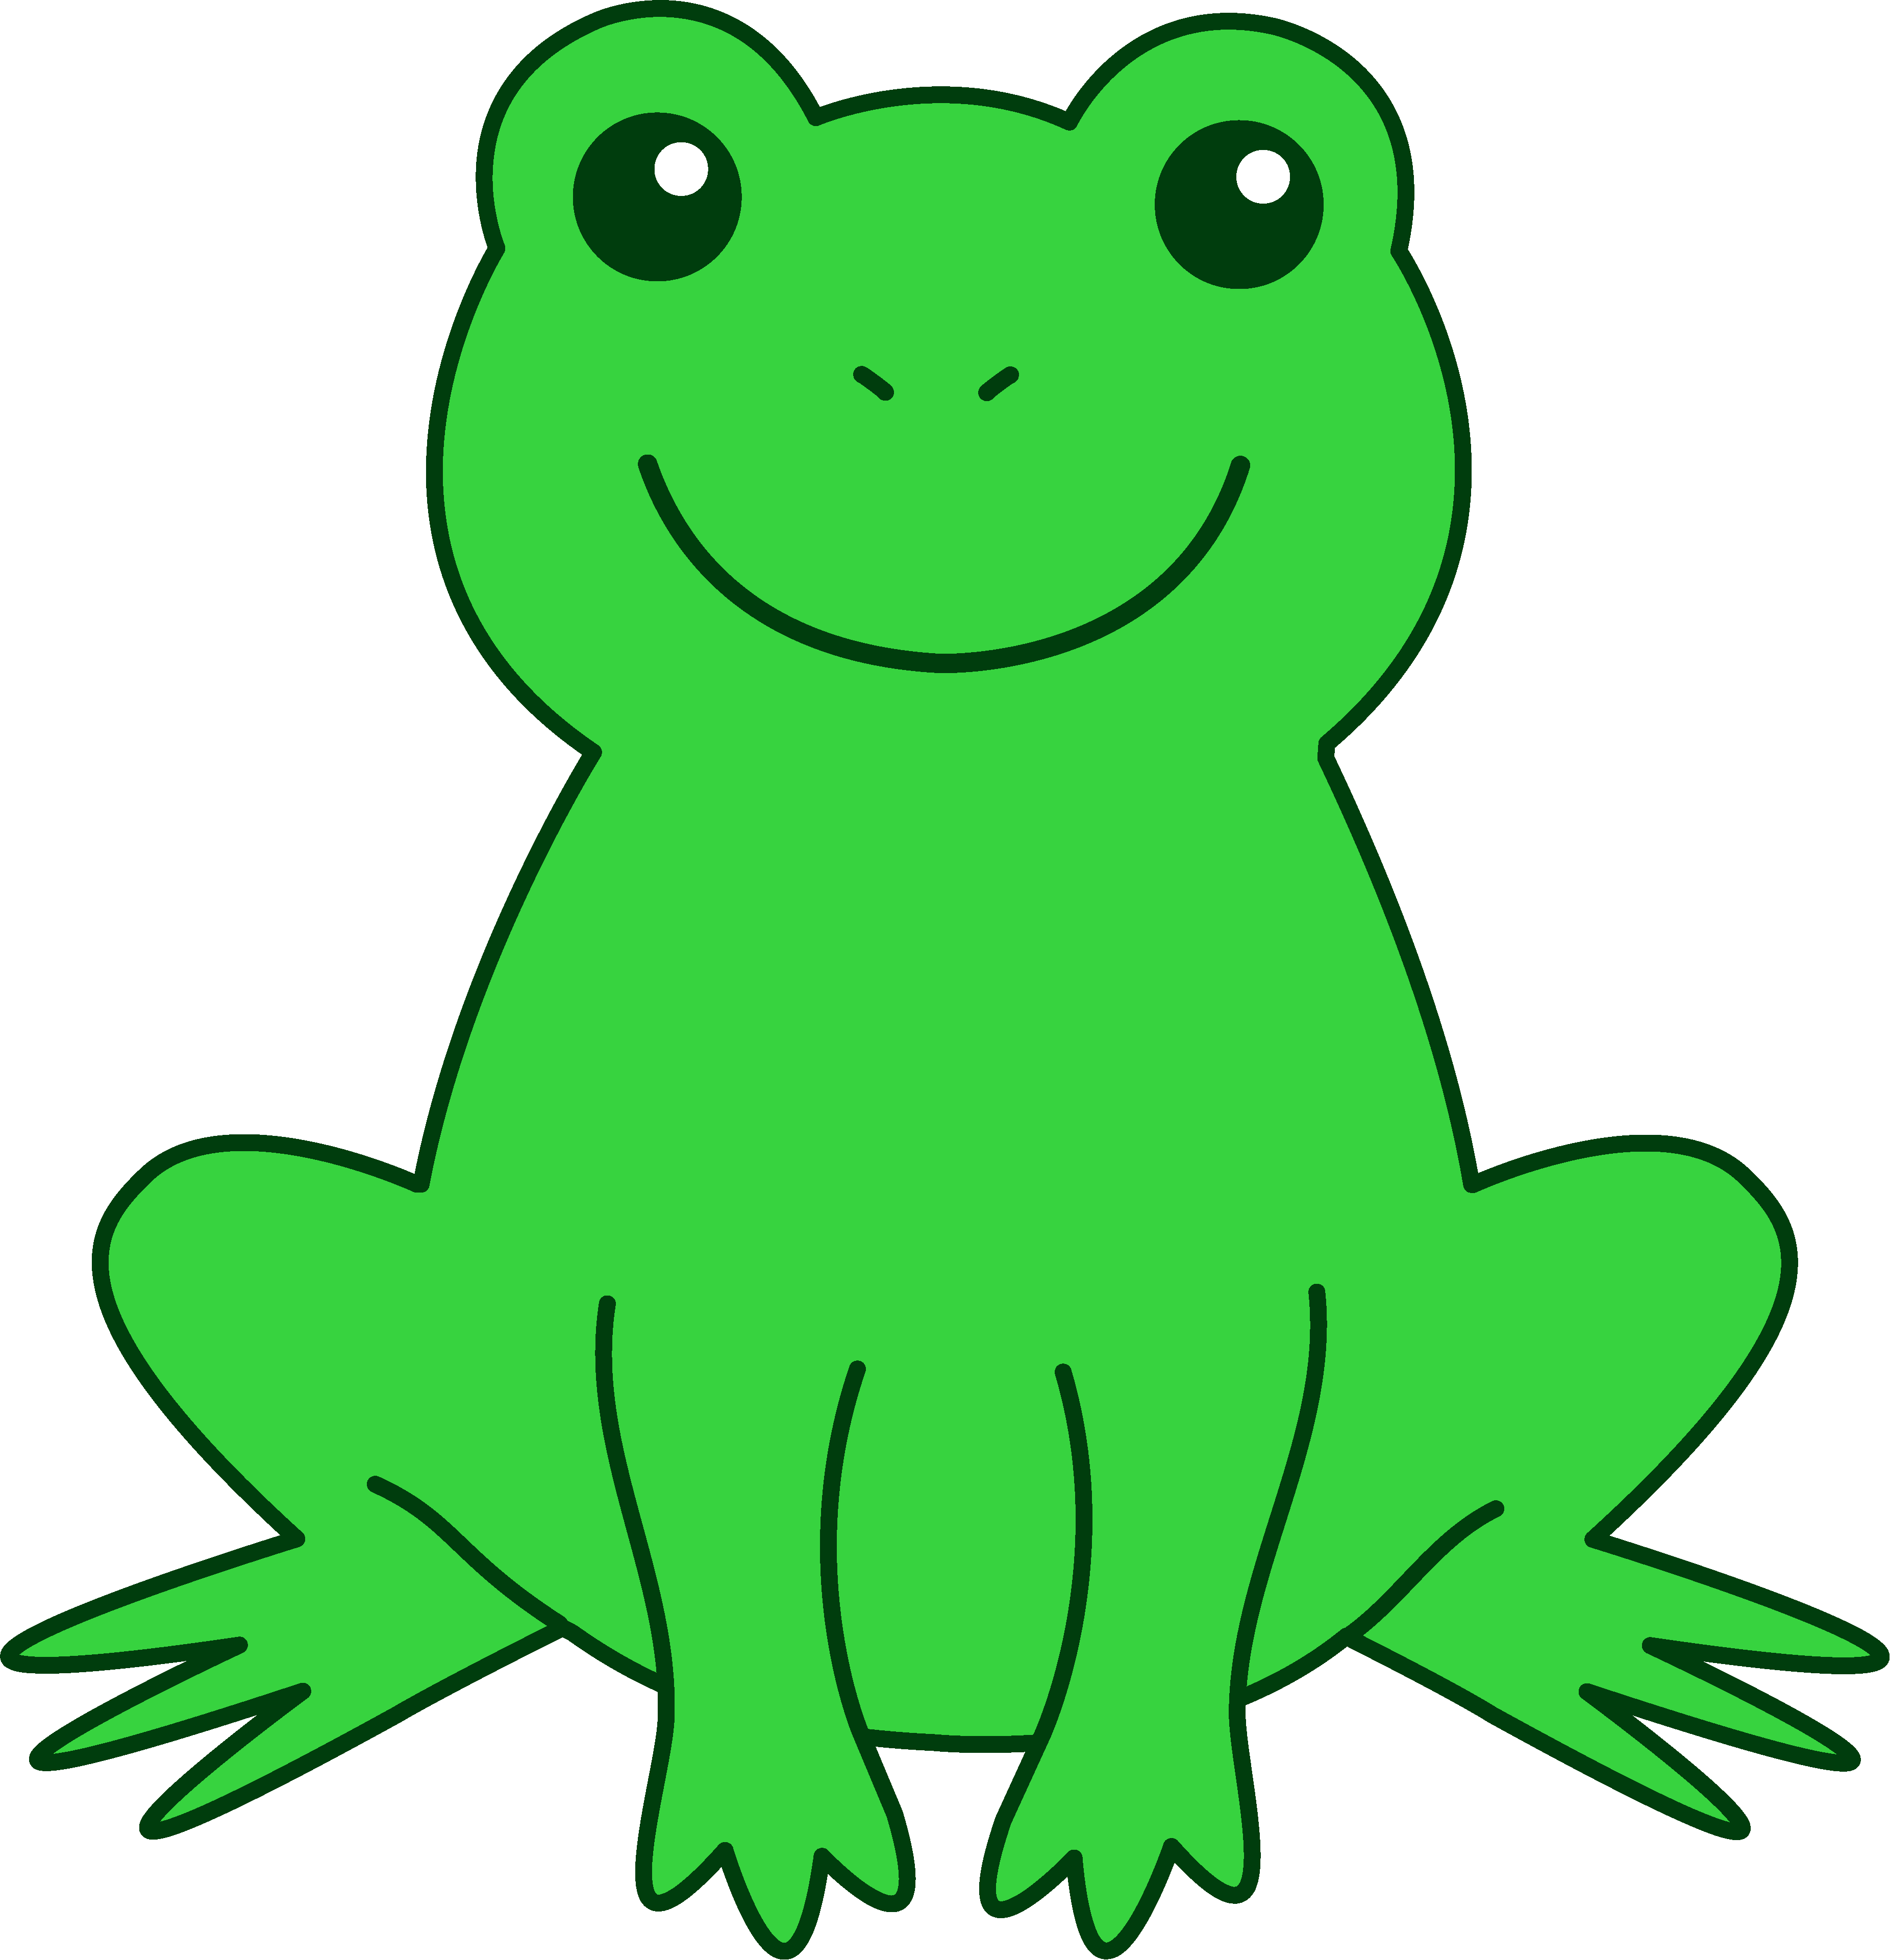 Frog cartoon clipart image royalty free library Free Free Frog Images, Download Free Clip Art, Free Clip Art on ... image royalty free library